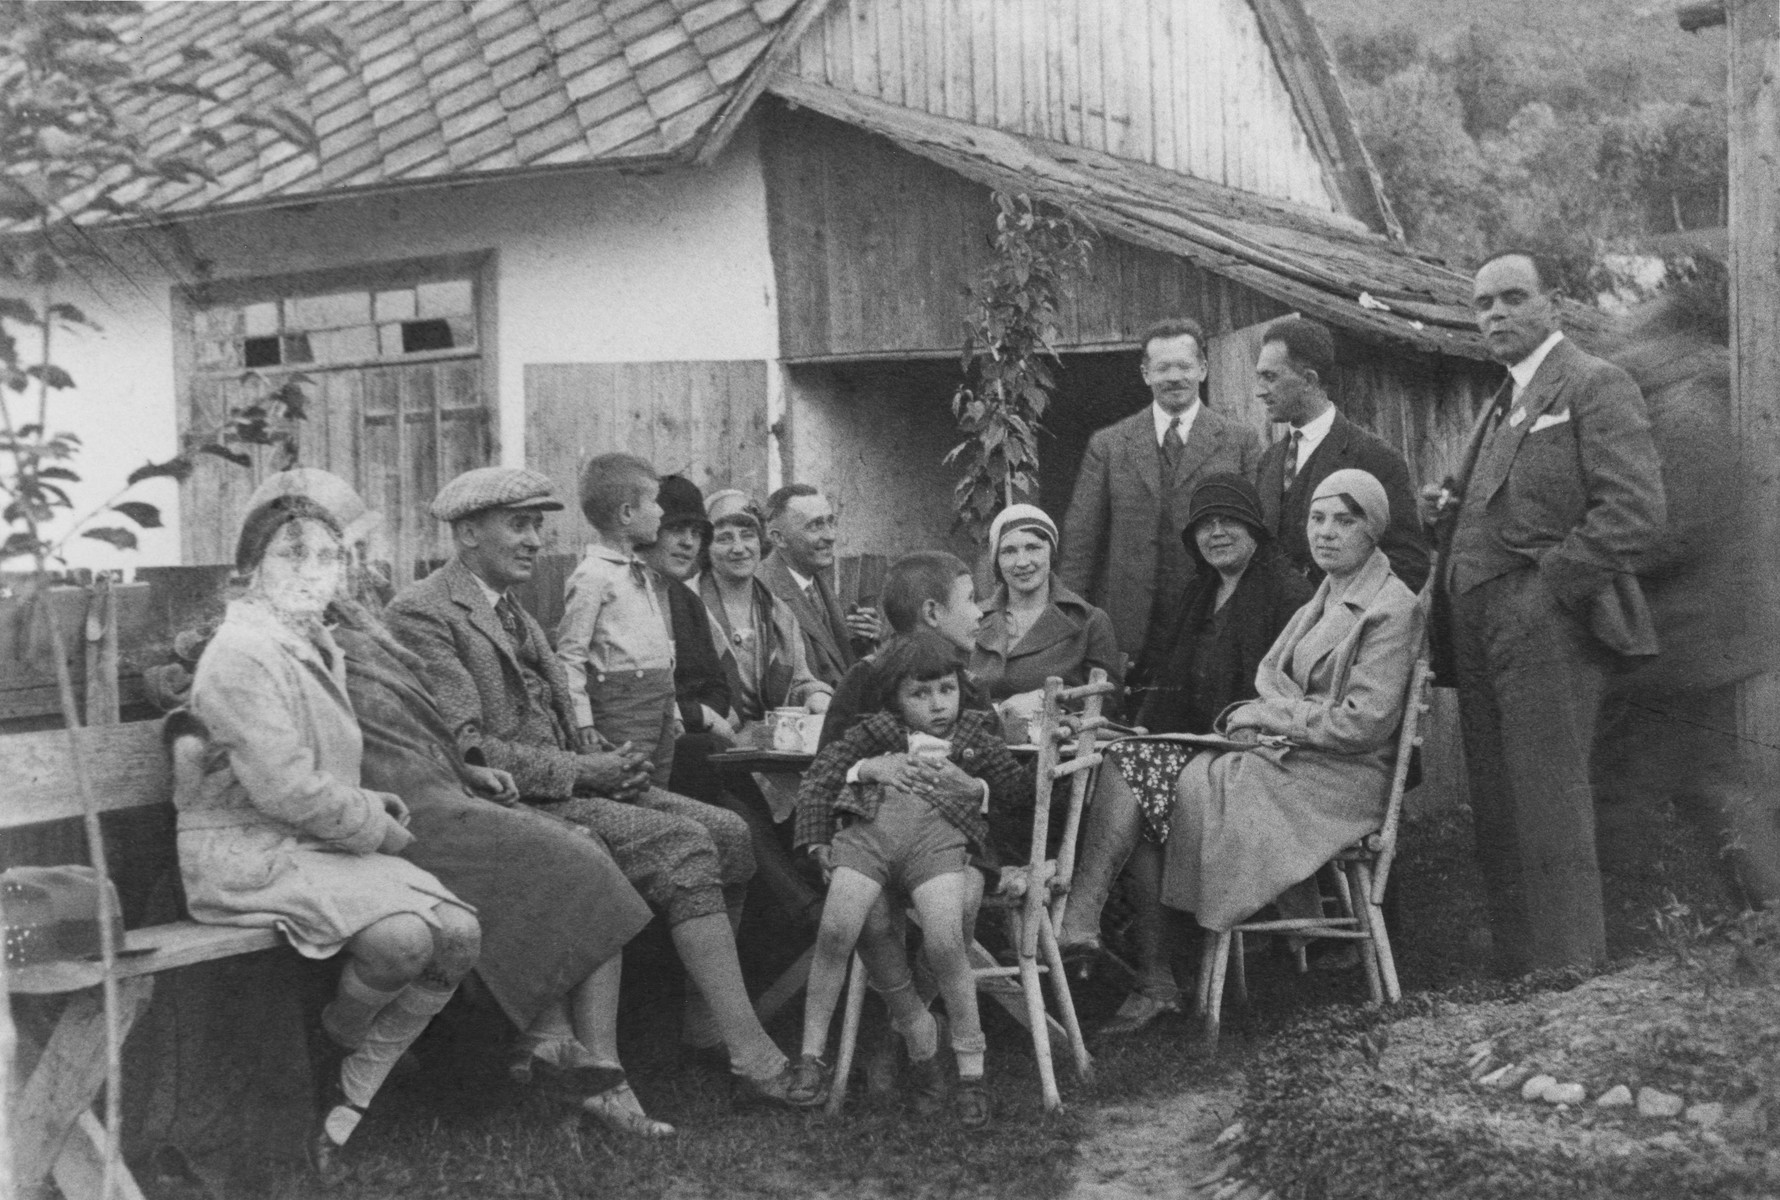 Lotte Gottfried (left) attends a social gathering at the home of the Offners, a Romanian family in Czernowitz.    She was escorted to the party by a family friend, Dr. Brilliant (standing third from the right).  Brilliant became a Nazi supporter after a trip to Berlin in 1938 and abruptly terminated his long standing friendship with the Gottfrieds.